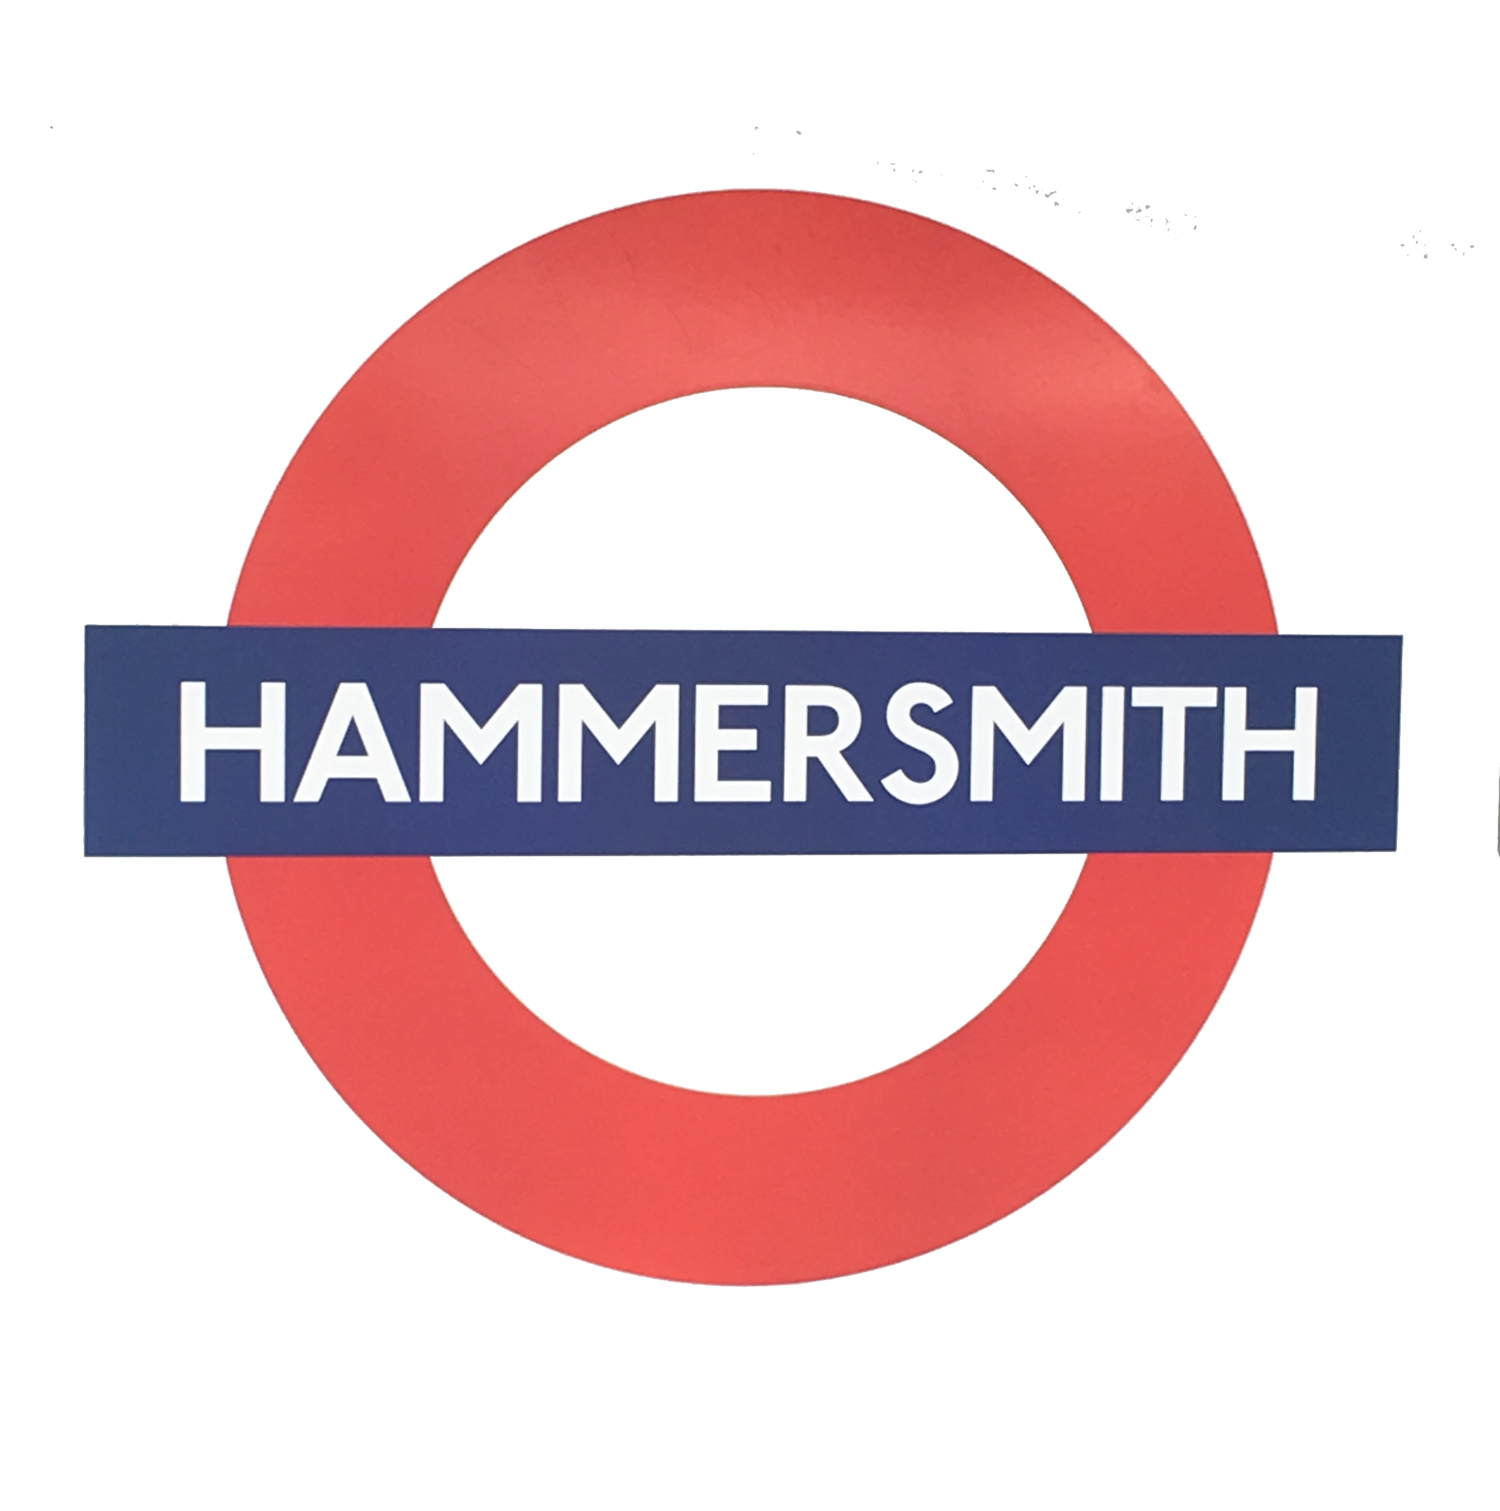 HAMMERSMITH Institute